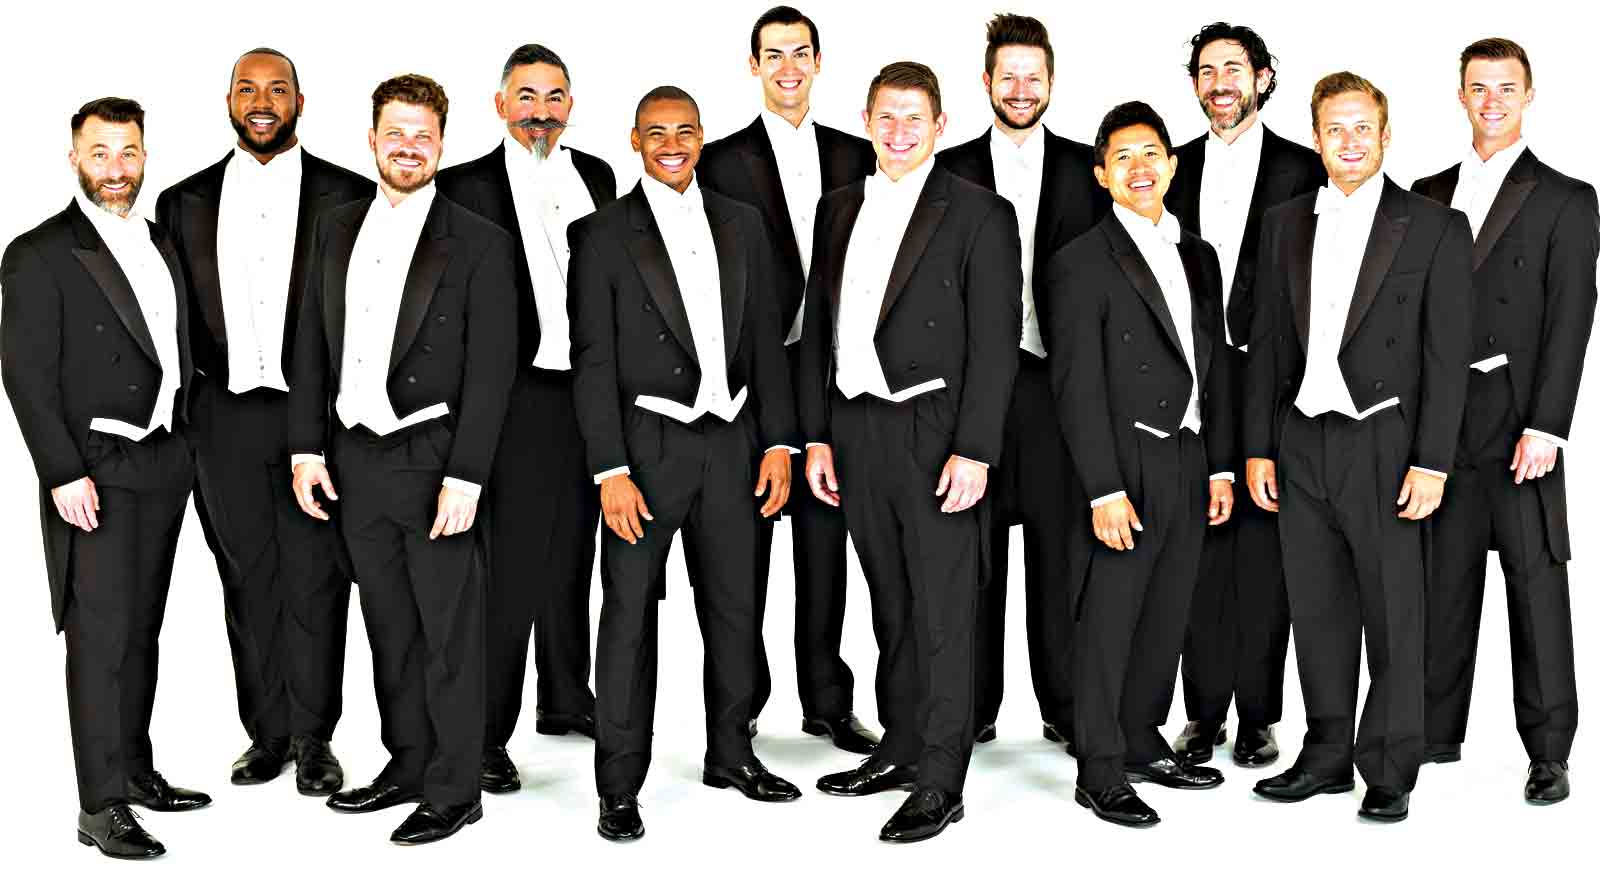 Chanticleer to perform at smoot theatre news sports for The chanticleer